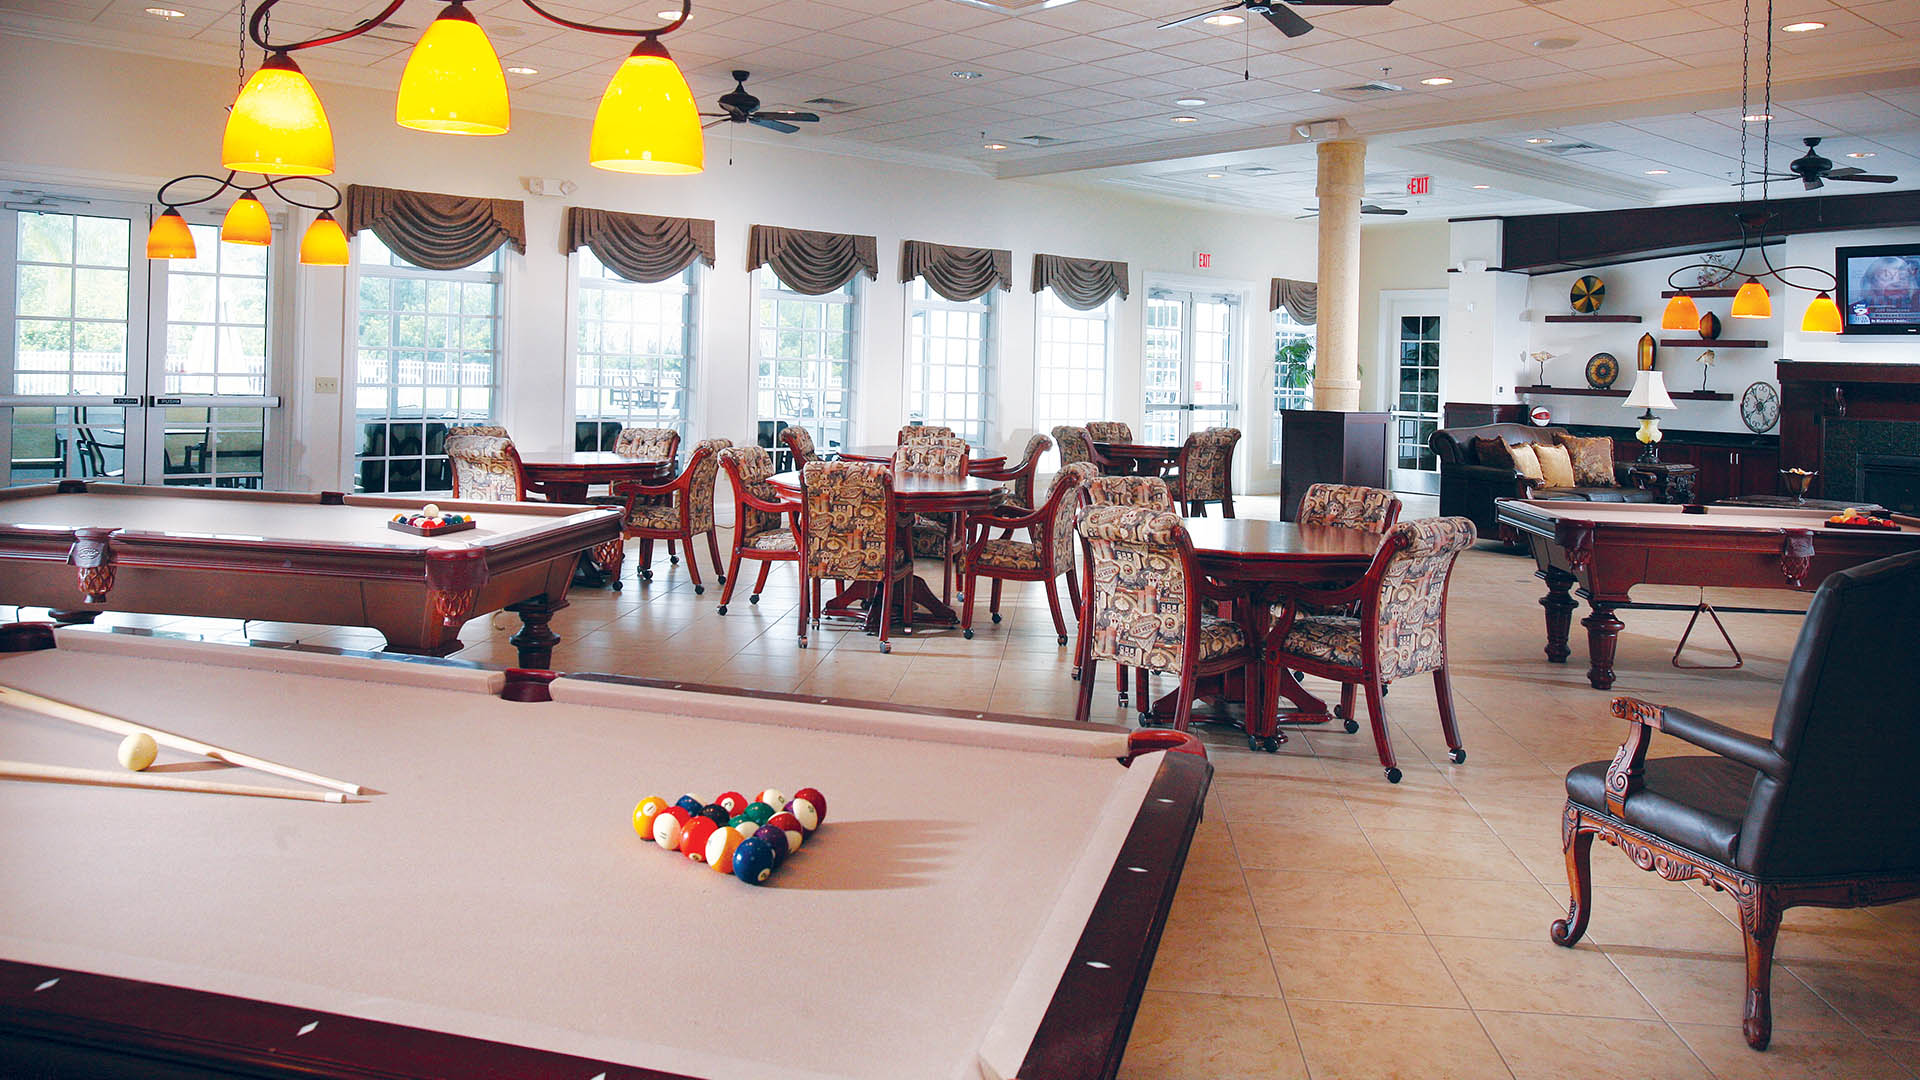 Riverside Club 55+ Golf, Marina and Manufactured Homes Community Clubhouse Interior in Ruskin, FL